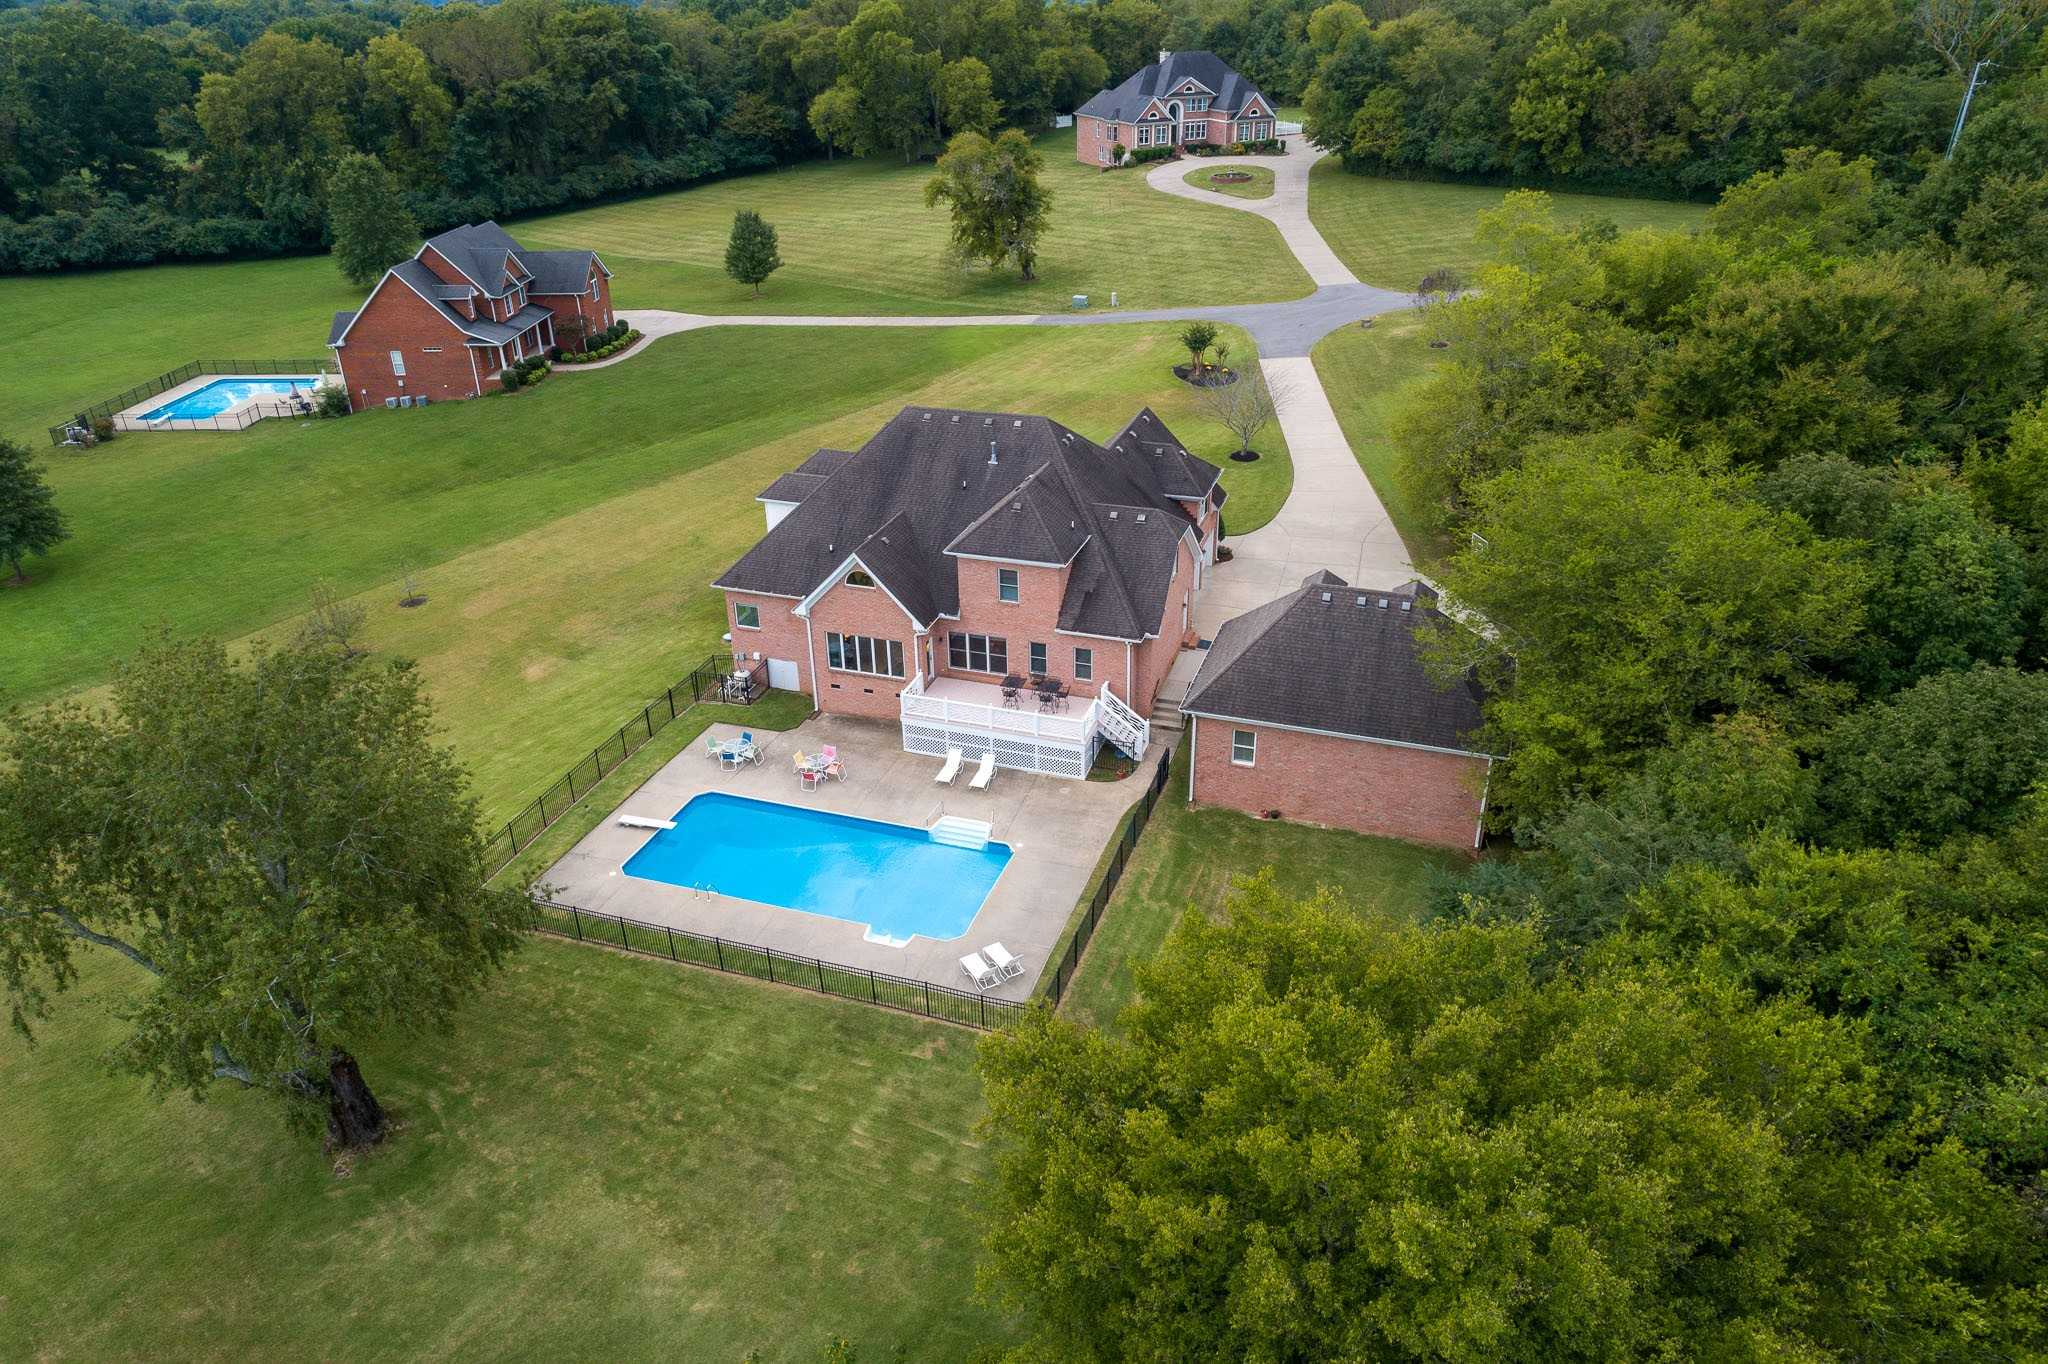 $799,000 - 5Br/3Ba -  for Sale in Dillard Property, Madison